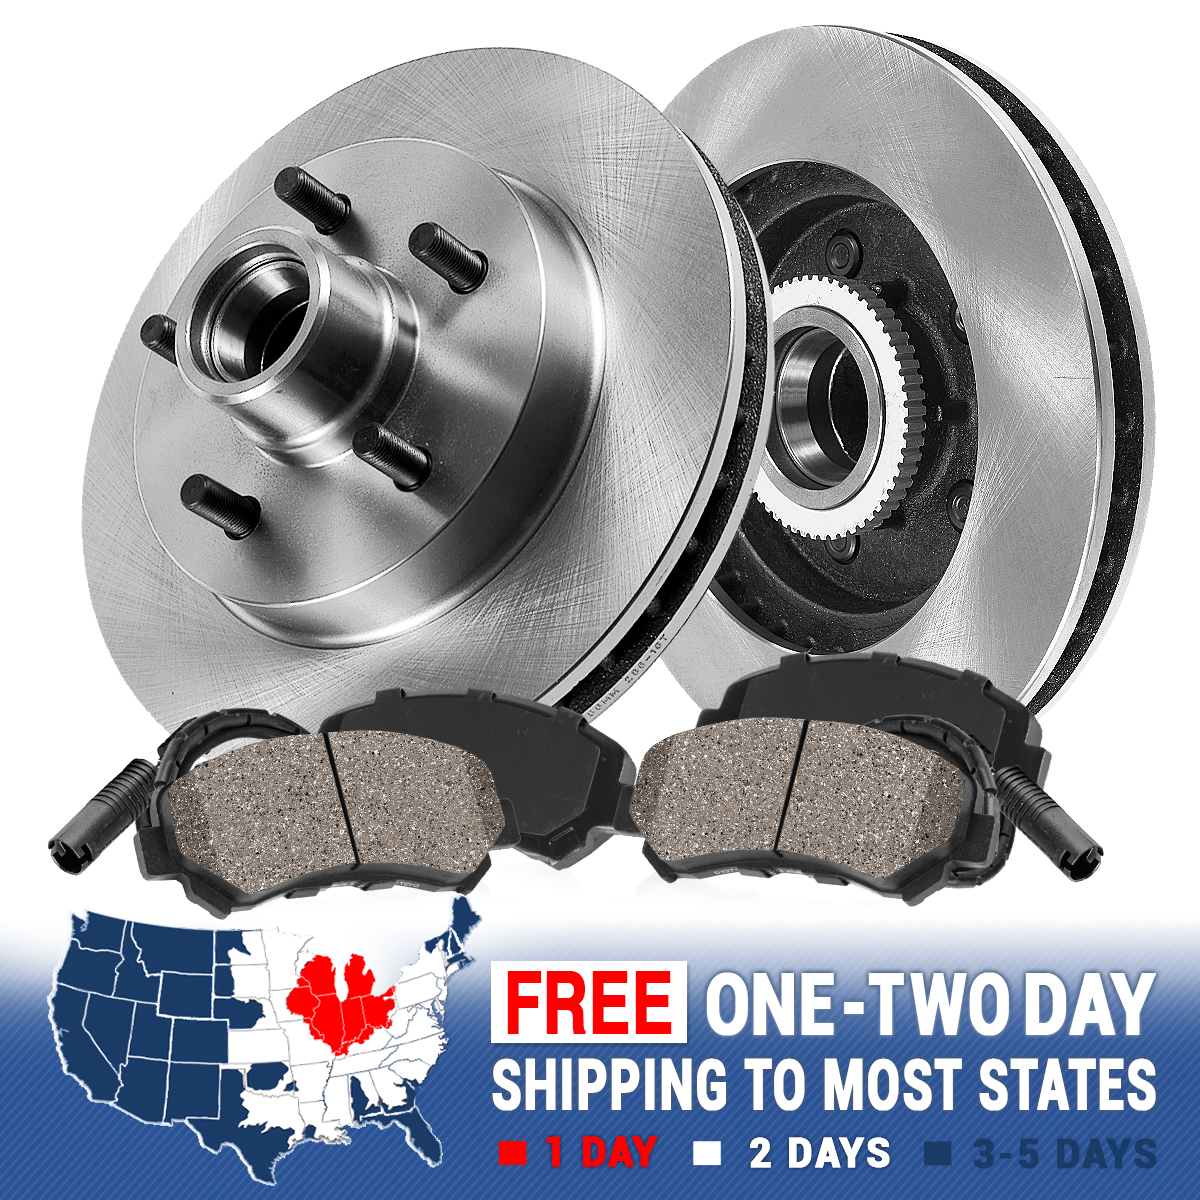 With Two Years Manufacturer Warranty Brake Pads Include Hardware Front Disc Brake Rotors and Ceramic Brake Pads for 2001 Chevrolet Tracker